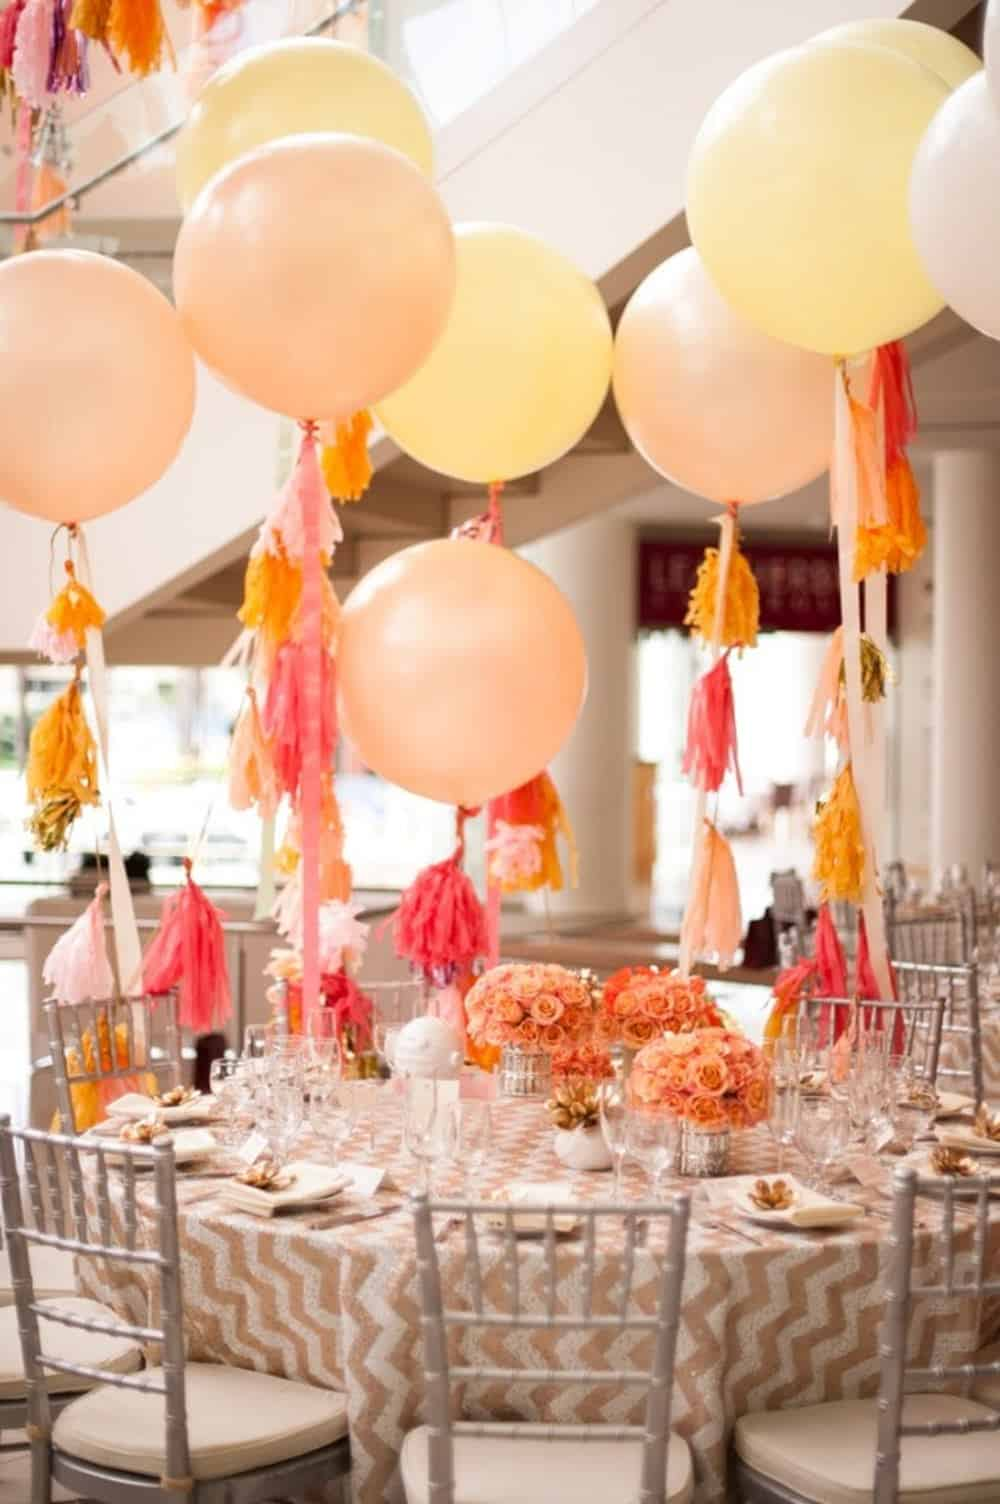 Tassled balloons centerpiece